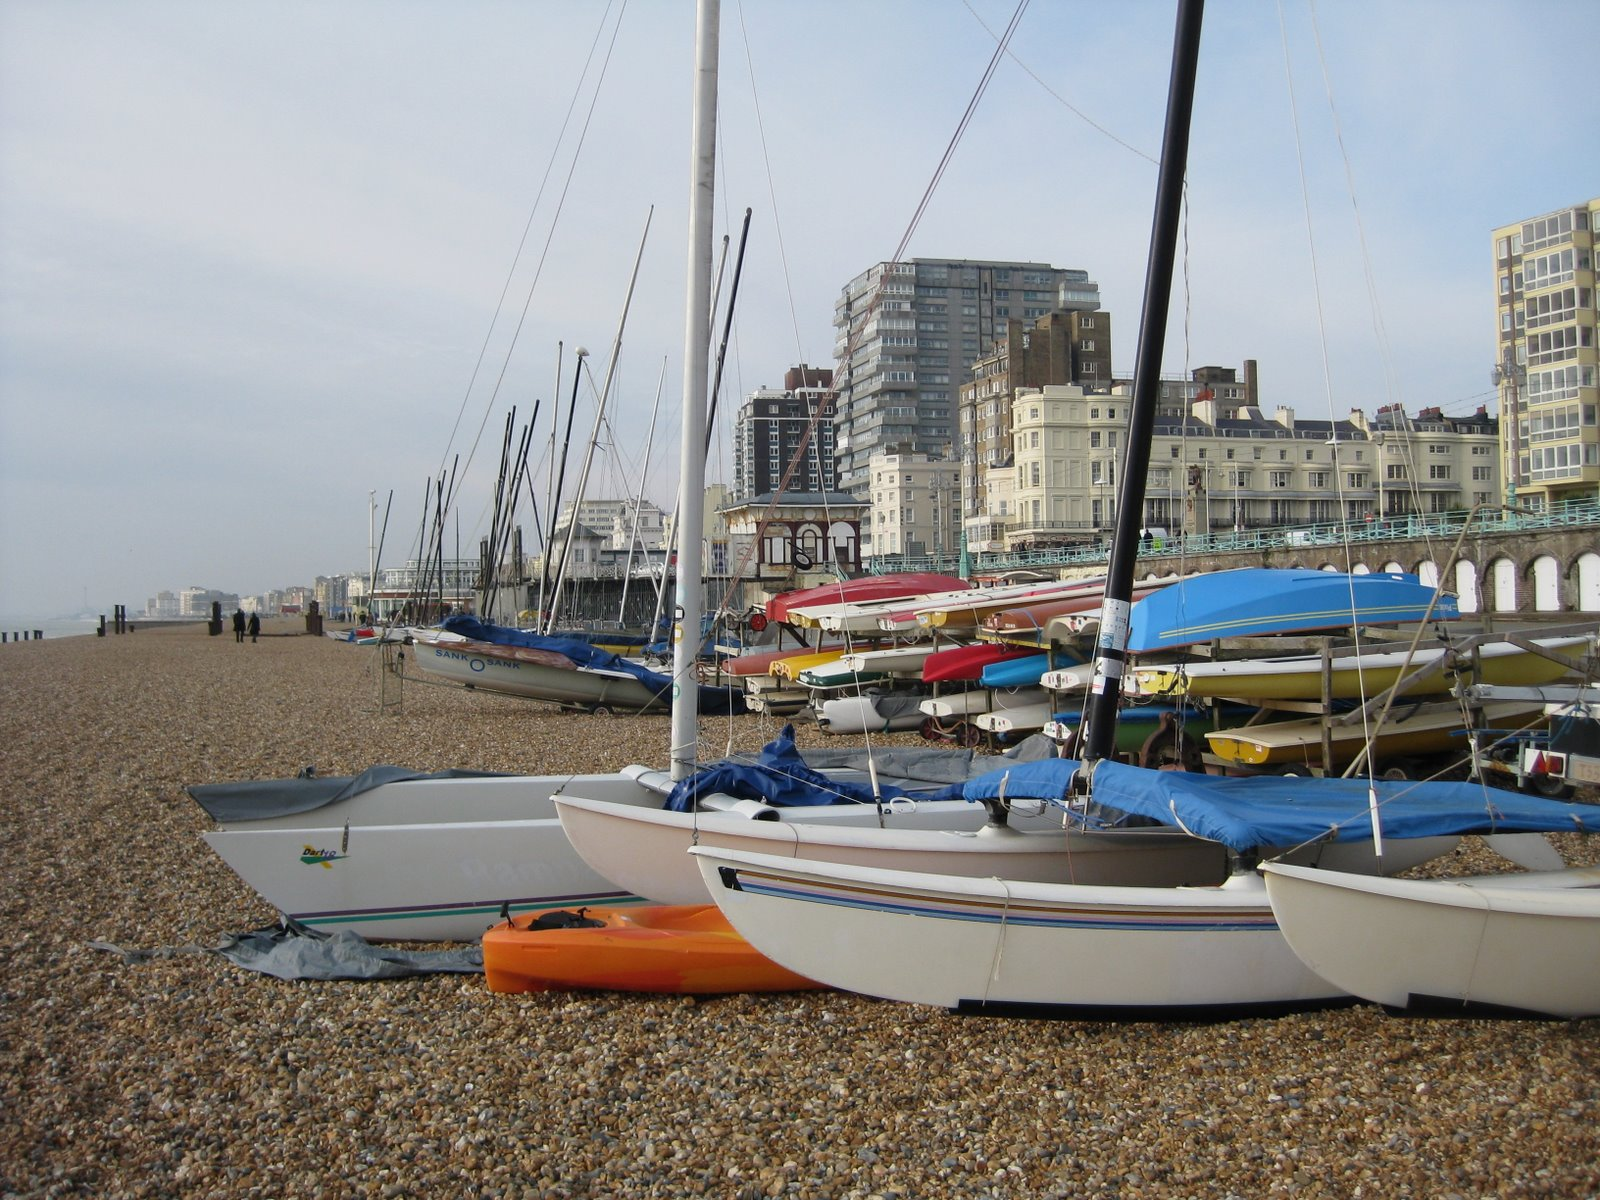 brighton seafront boat beach hove united kingdom travel planning trip